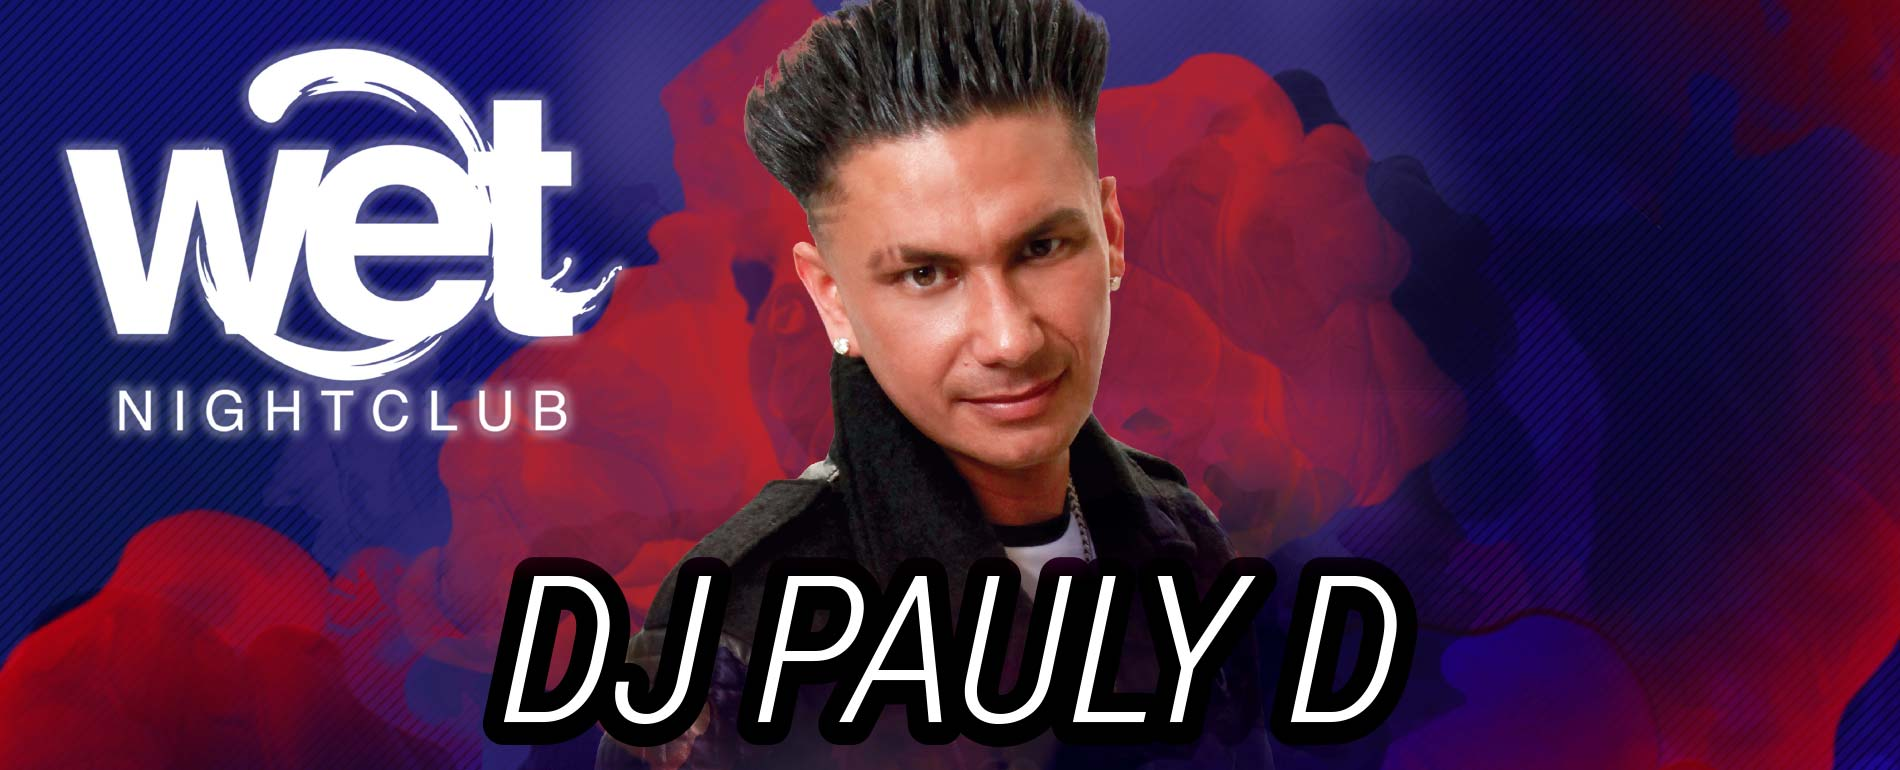 DJ Pualy D - Poconos Nightlife